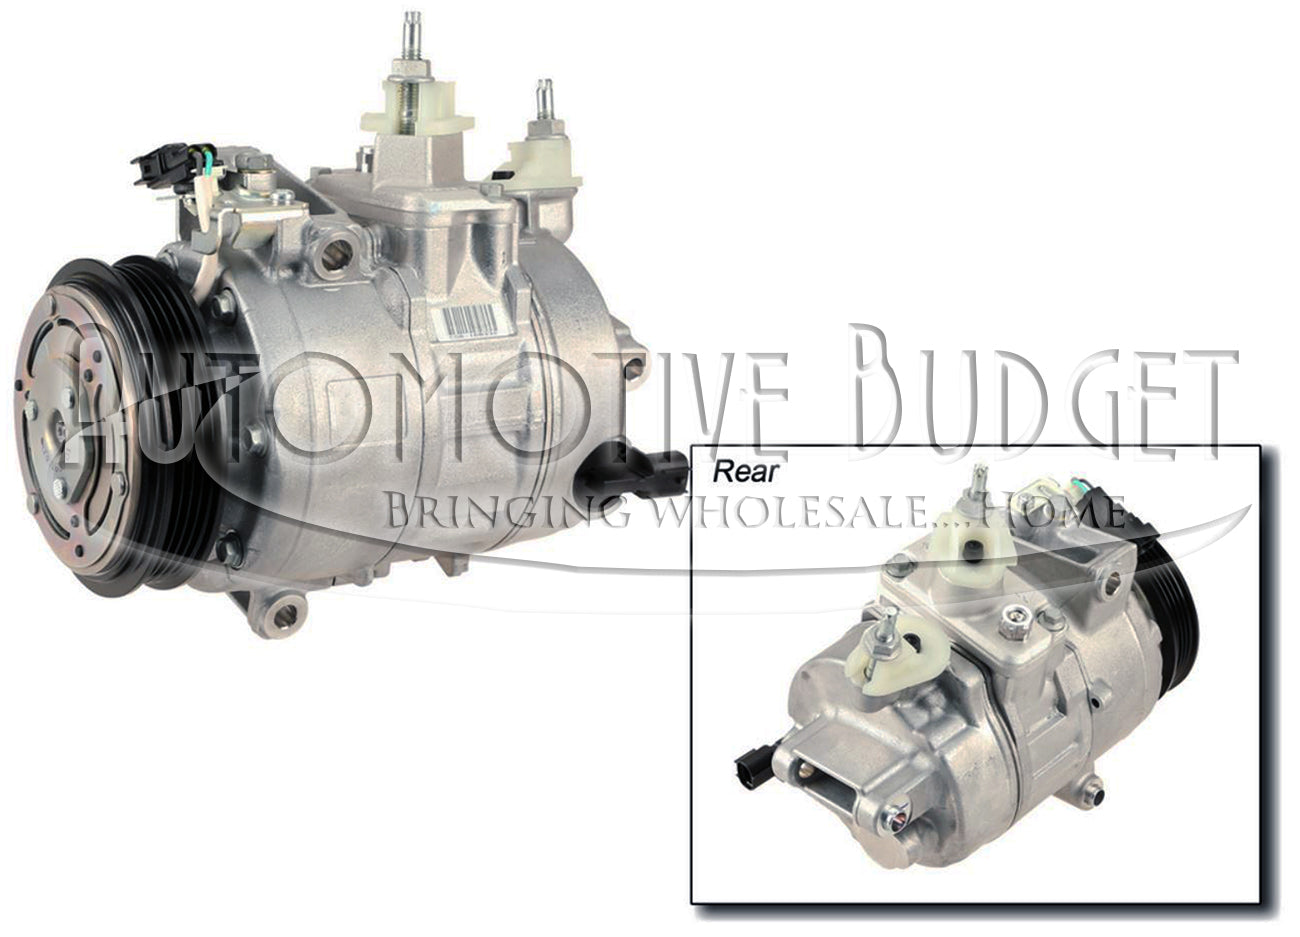 A/C Compressor & Parts for Ford Edge Fusion & Lincoln MKZ